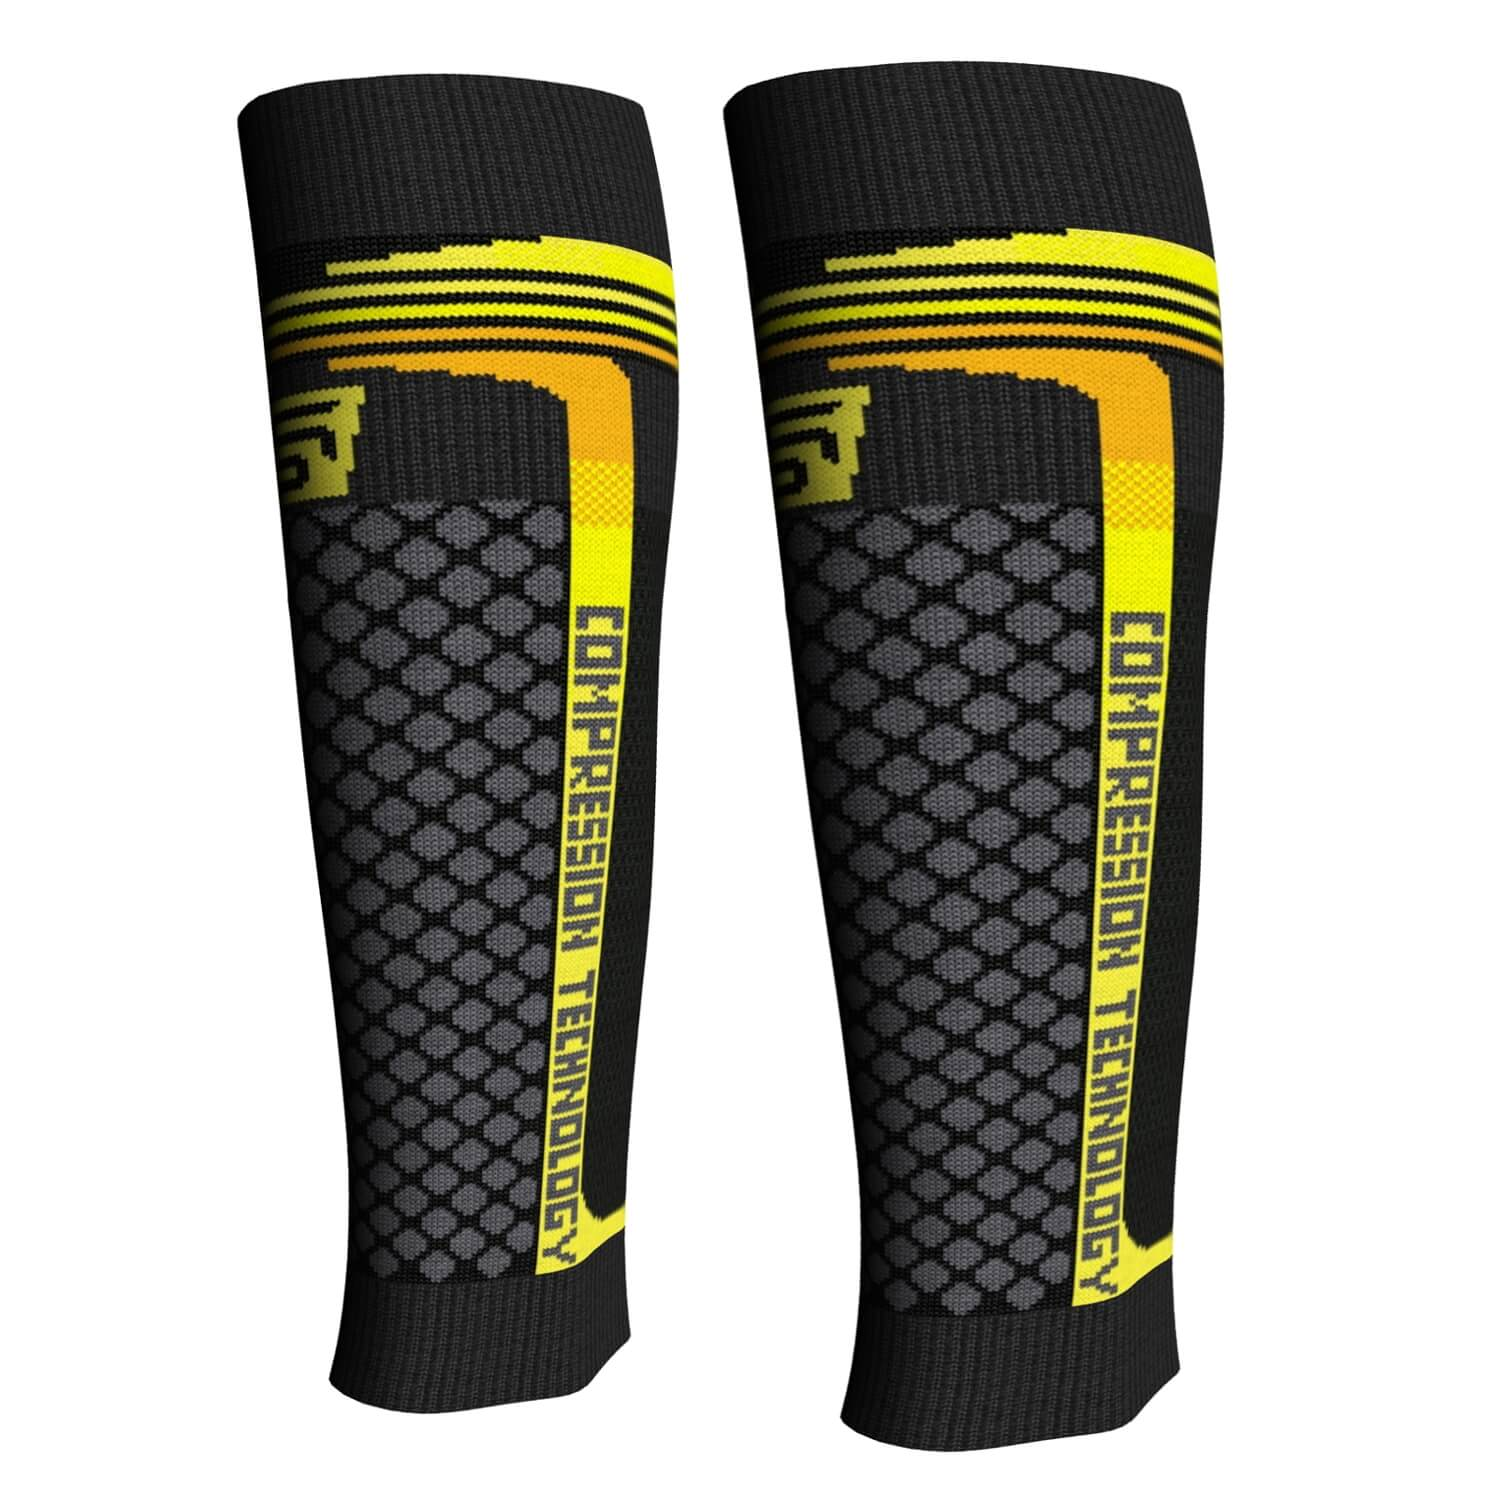 ZESTAW OPASEK KOMPRESYJNYCH SPEED SUPPORT ELITE BLACK/YELLOW